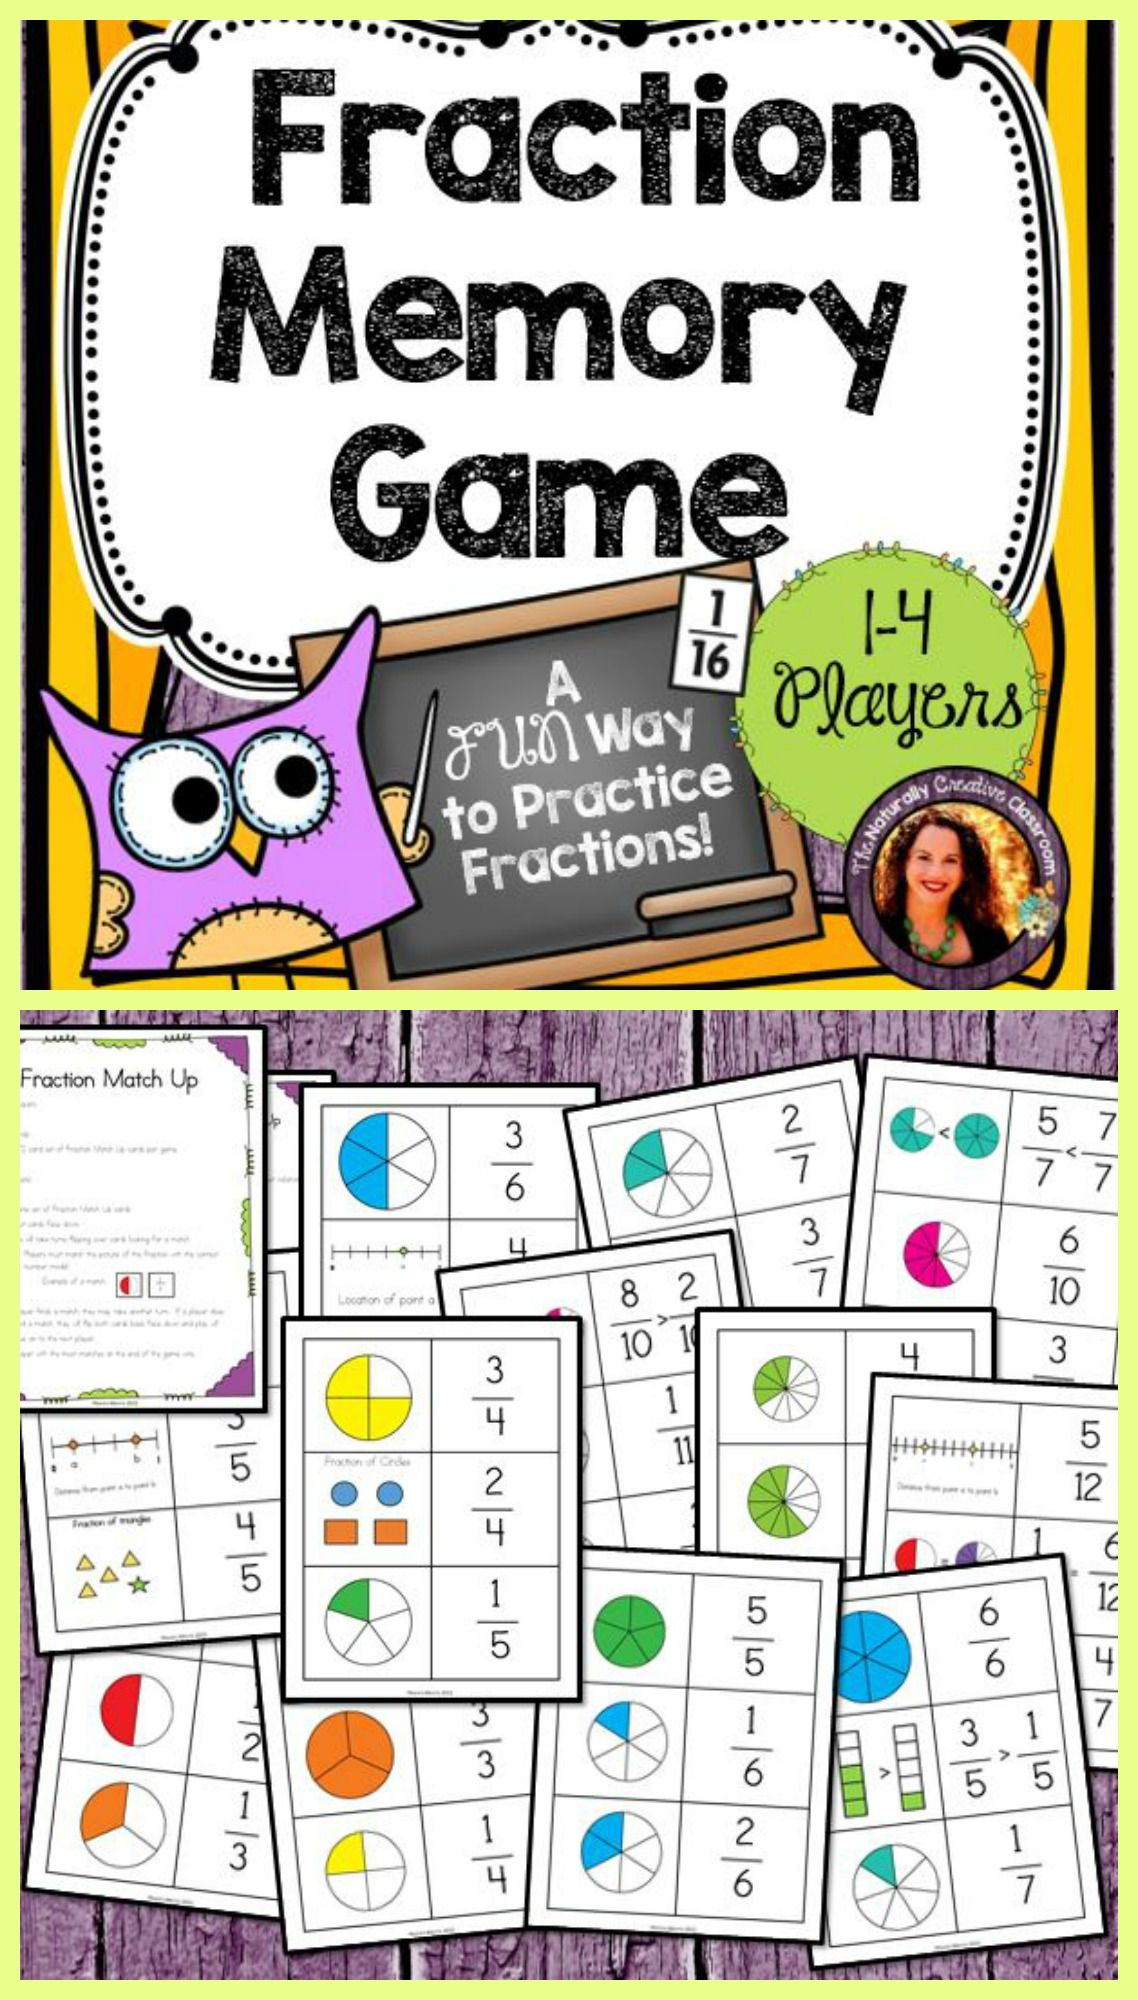 Fraction Memory Game Memory games, Fractions, Memories